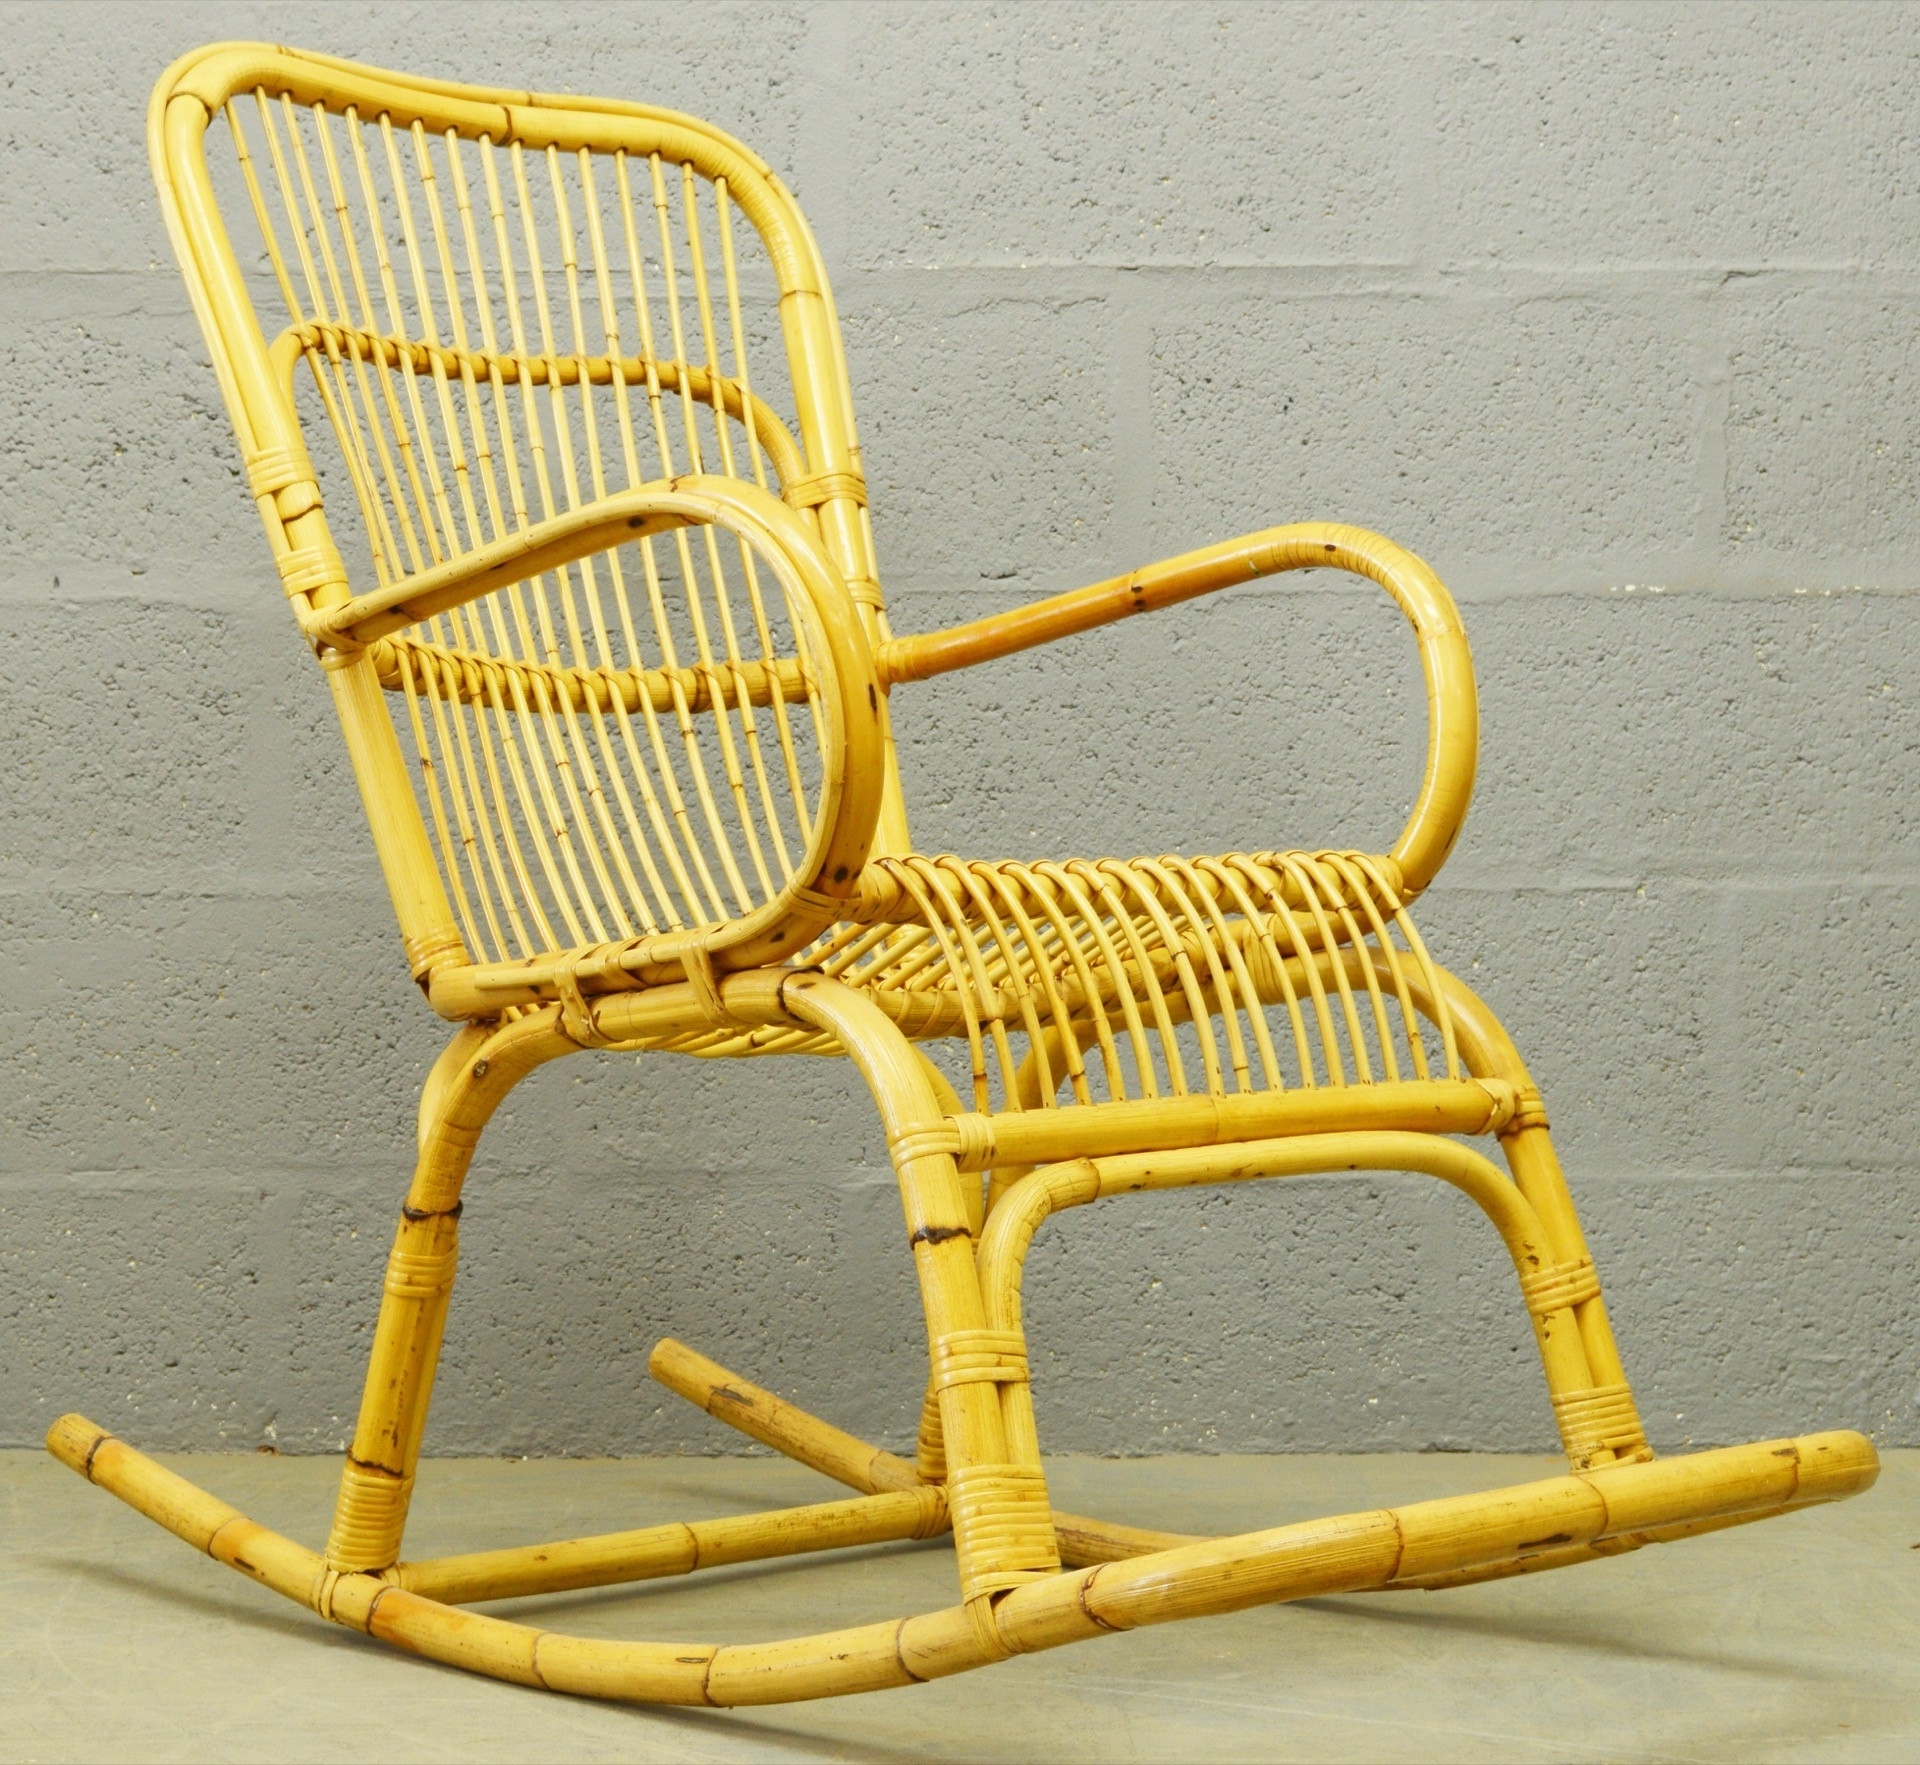 Mid Century Bamboo And Rattan Rocking Chair – 1960S – Design Market With Regard To 2018 Wicker Rocking Chair With Magazine Holder (View 13 of 20)